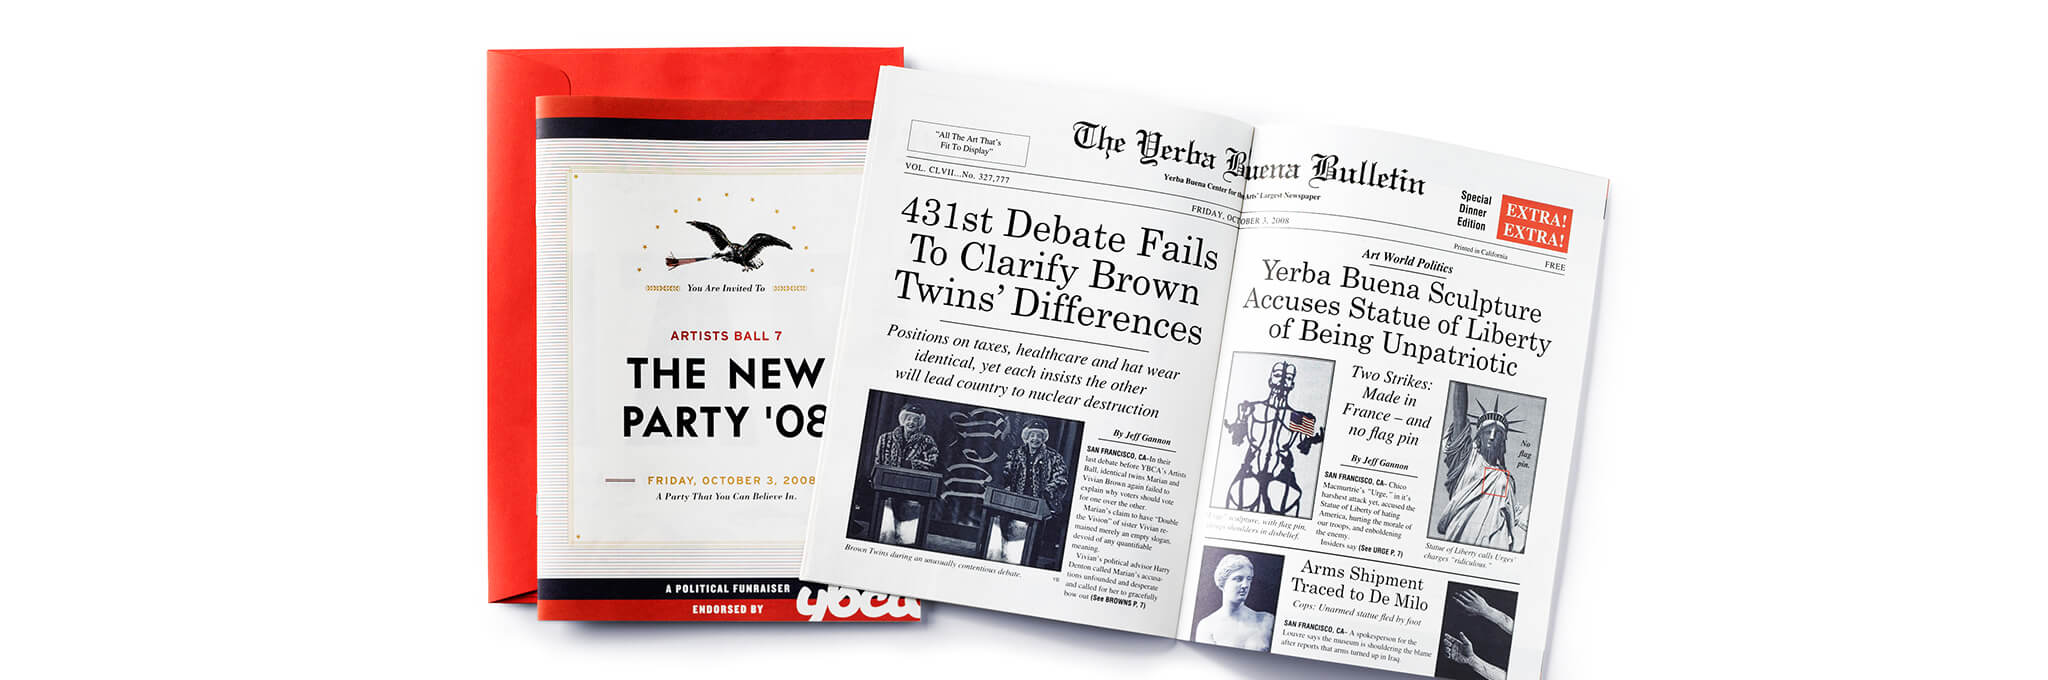 Open newspaper-style booklet for The New Party '08 atop red envelope